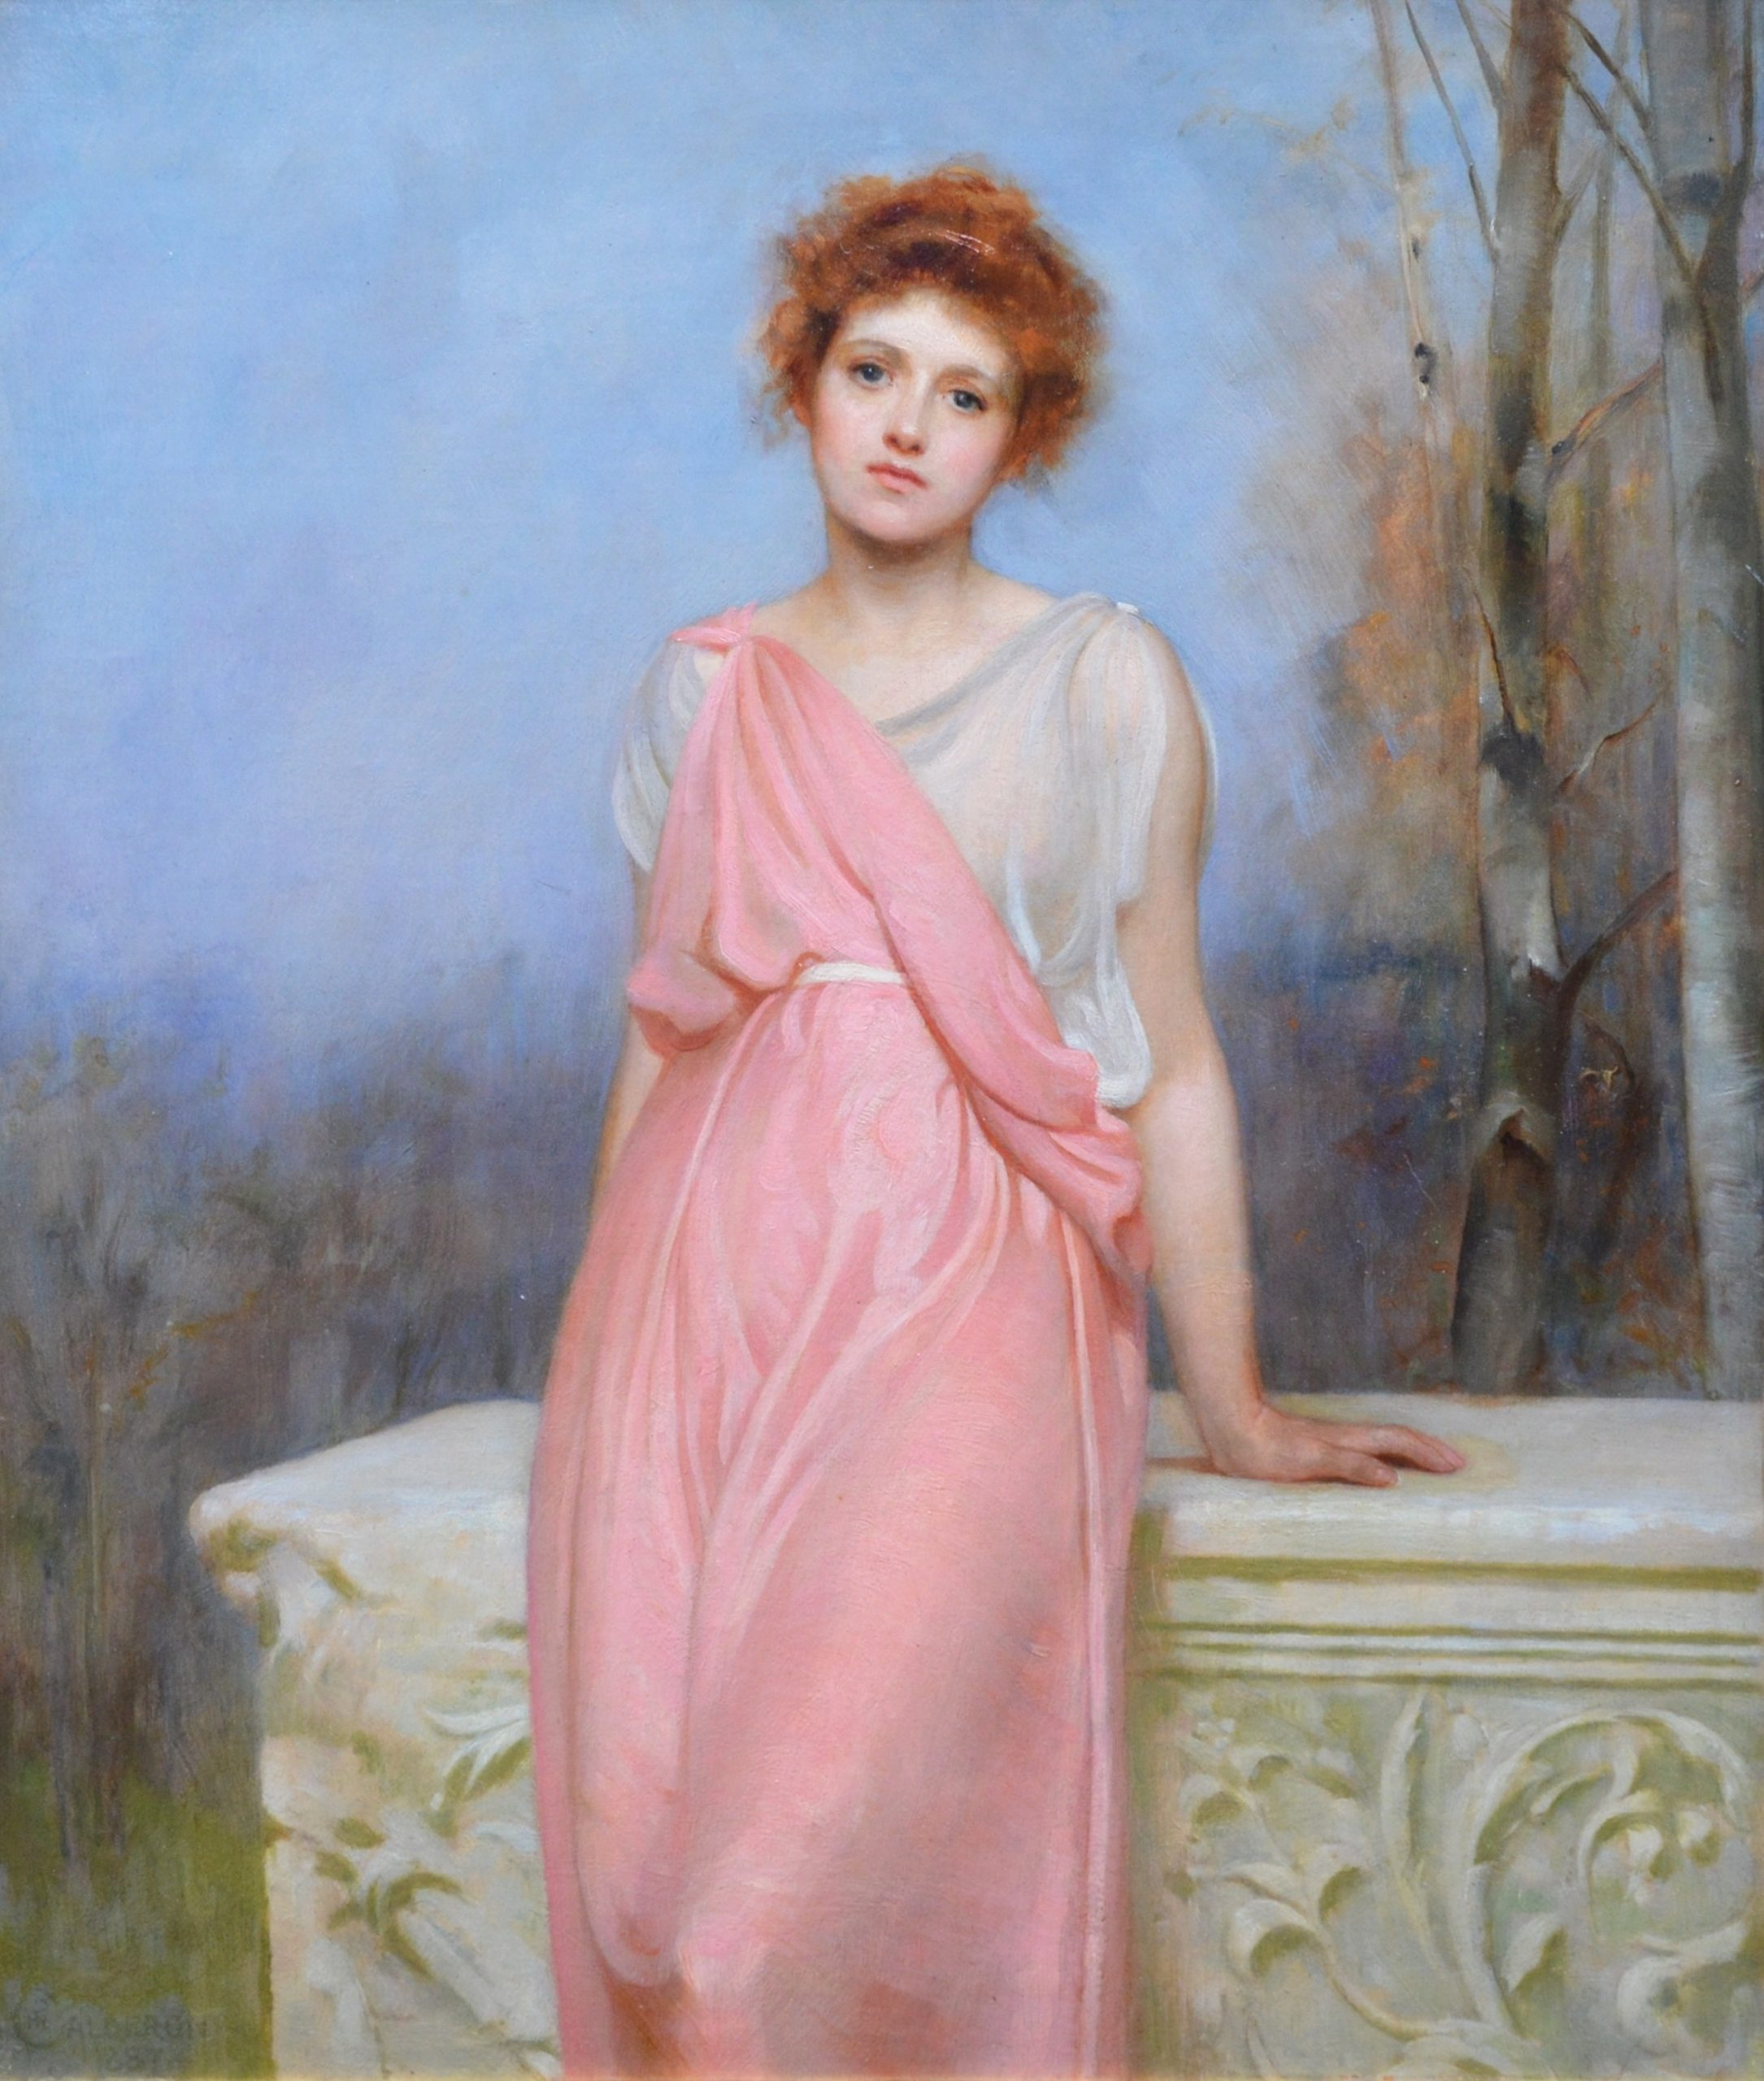 The Changer of Hearts - 19th Century Oil Painting Portrait of Roman Beauty Image